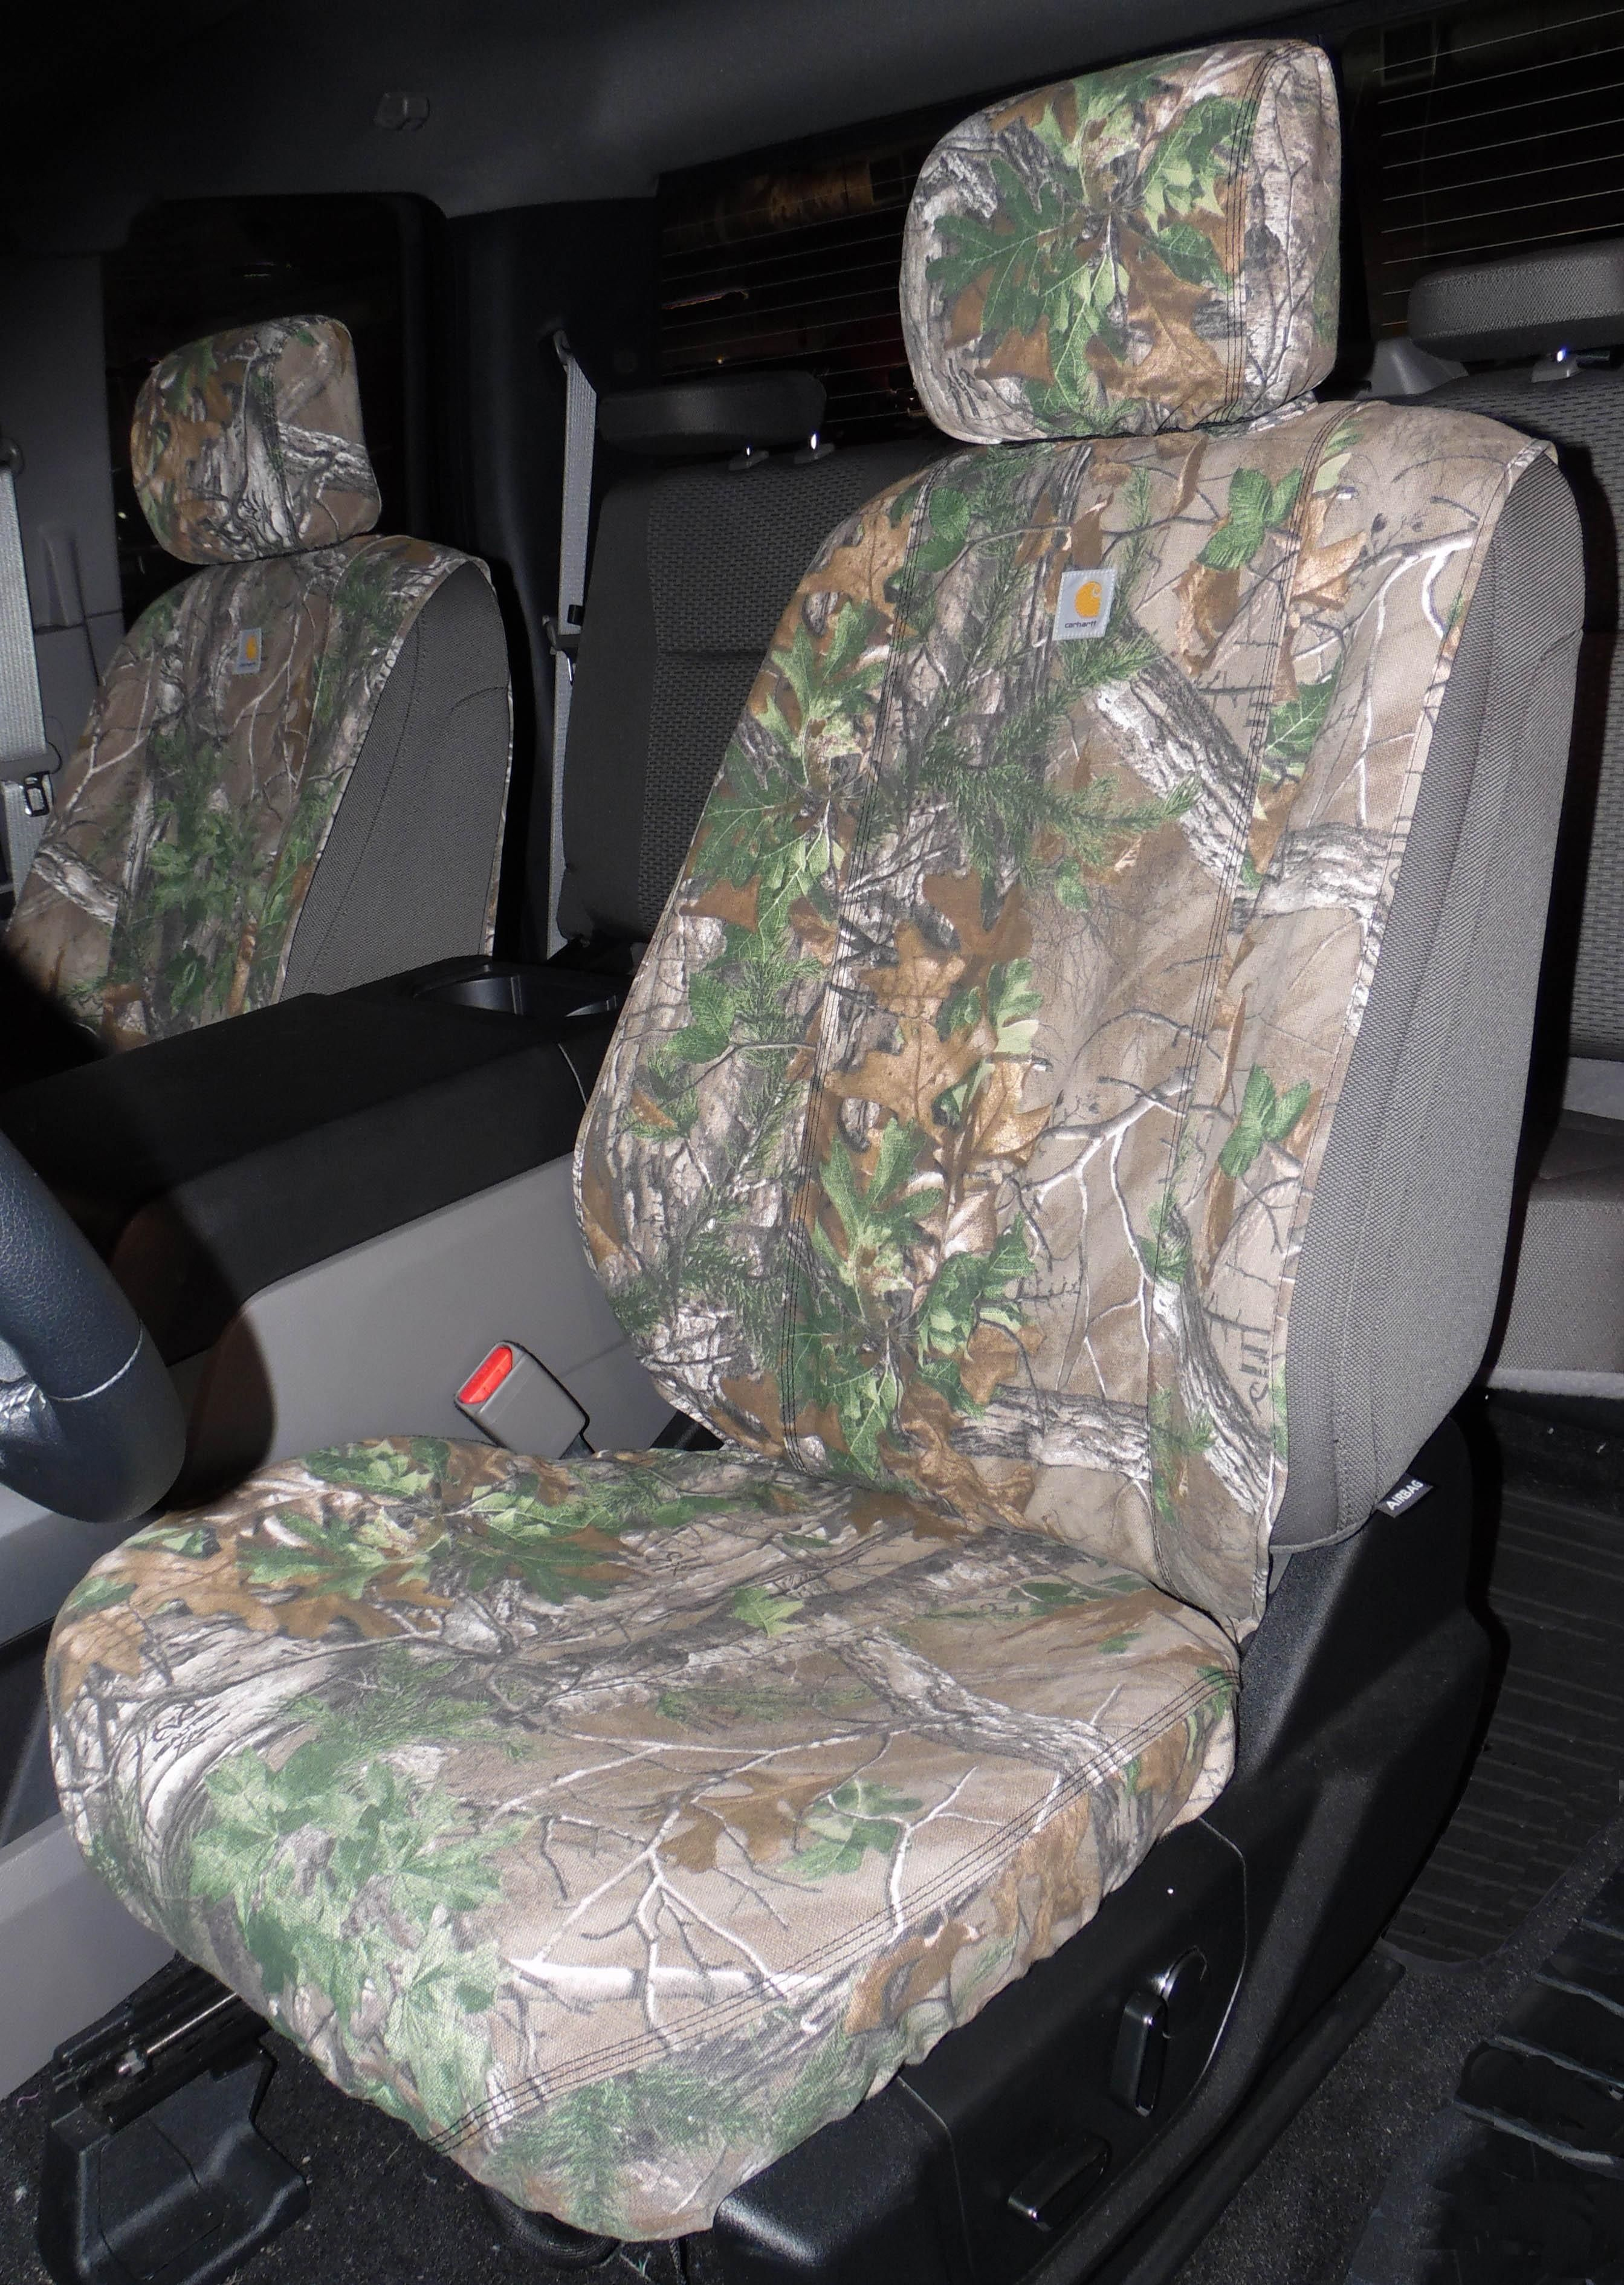 Seat Covers - Rear 40/20/40, Green